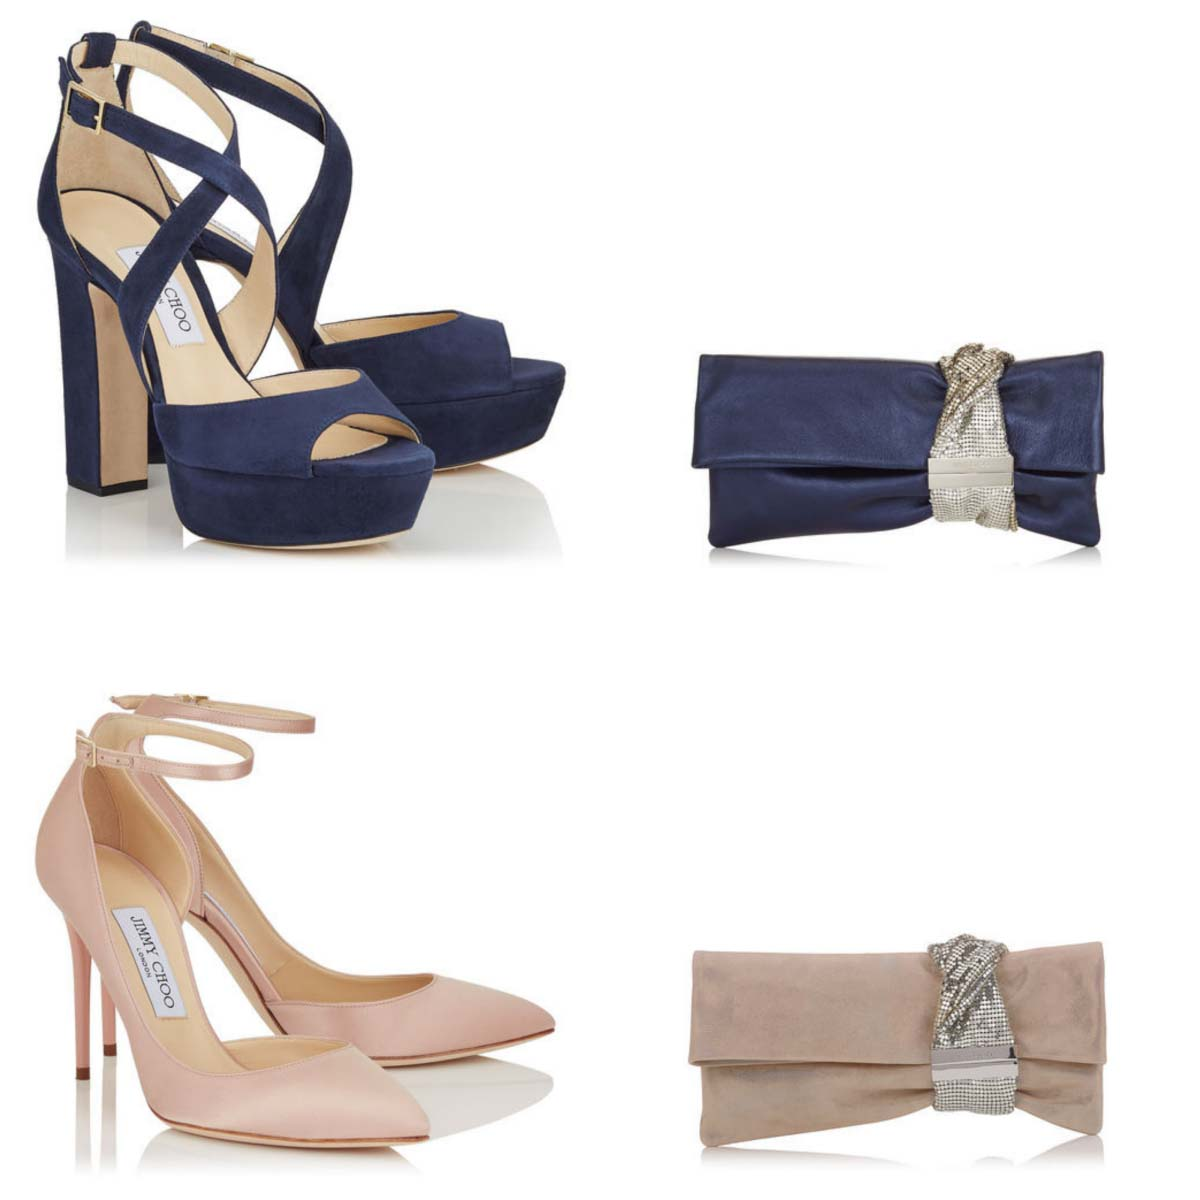 Jimmy Choo Latest Shoes and Handbags Collection 2017-2018 (8)